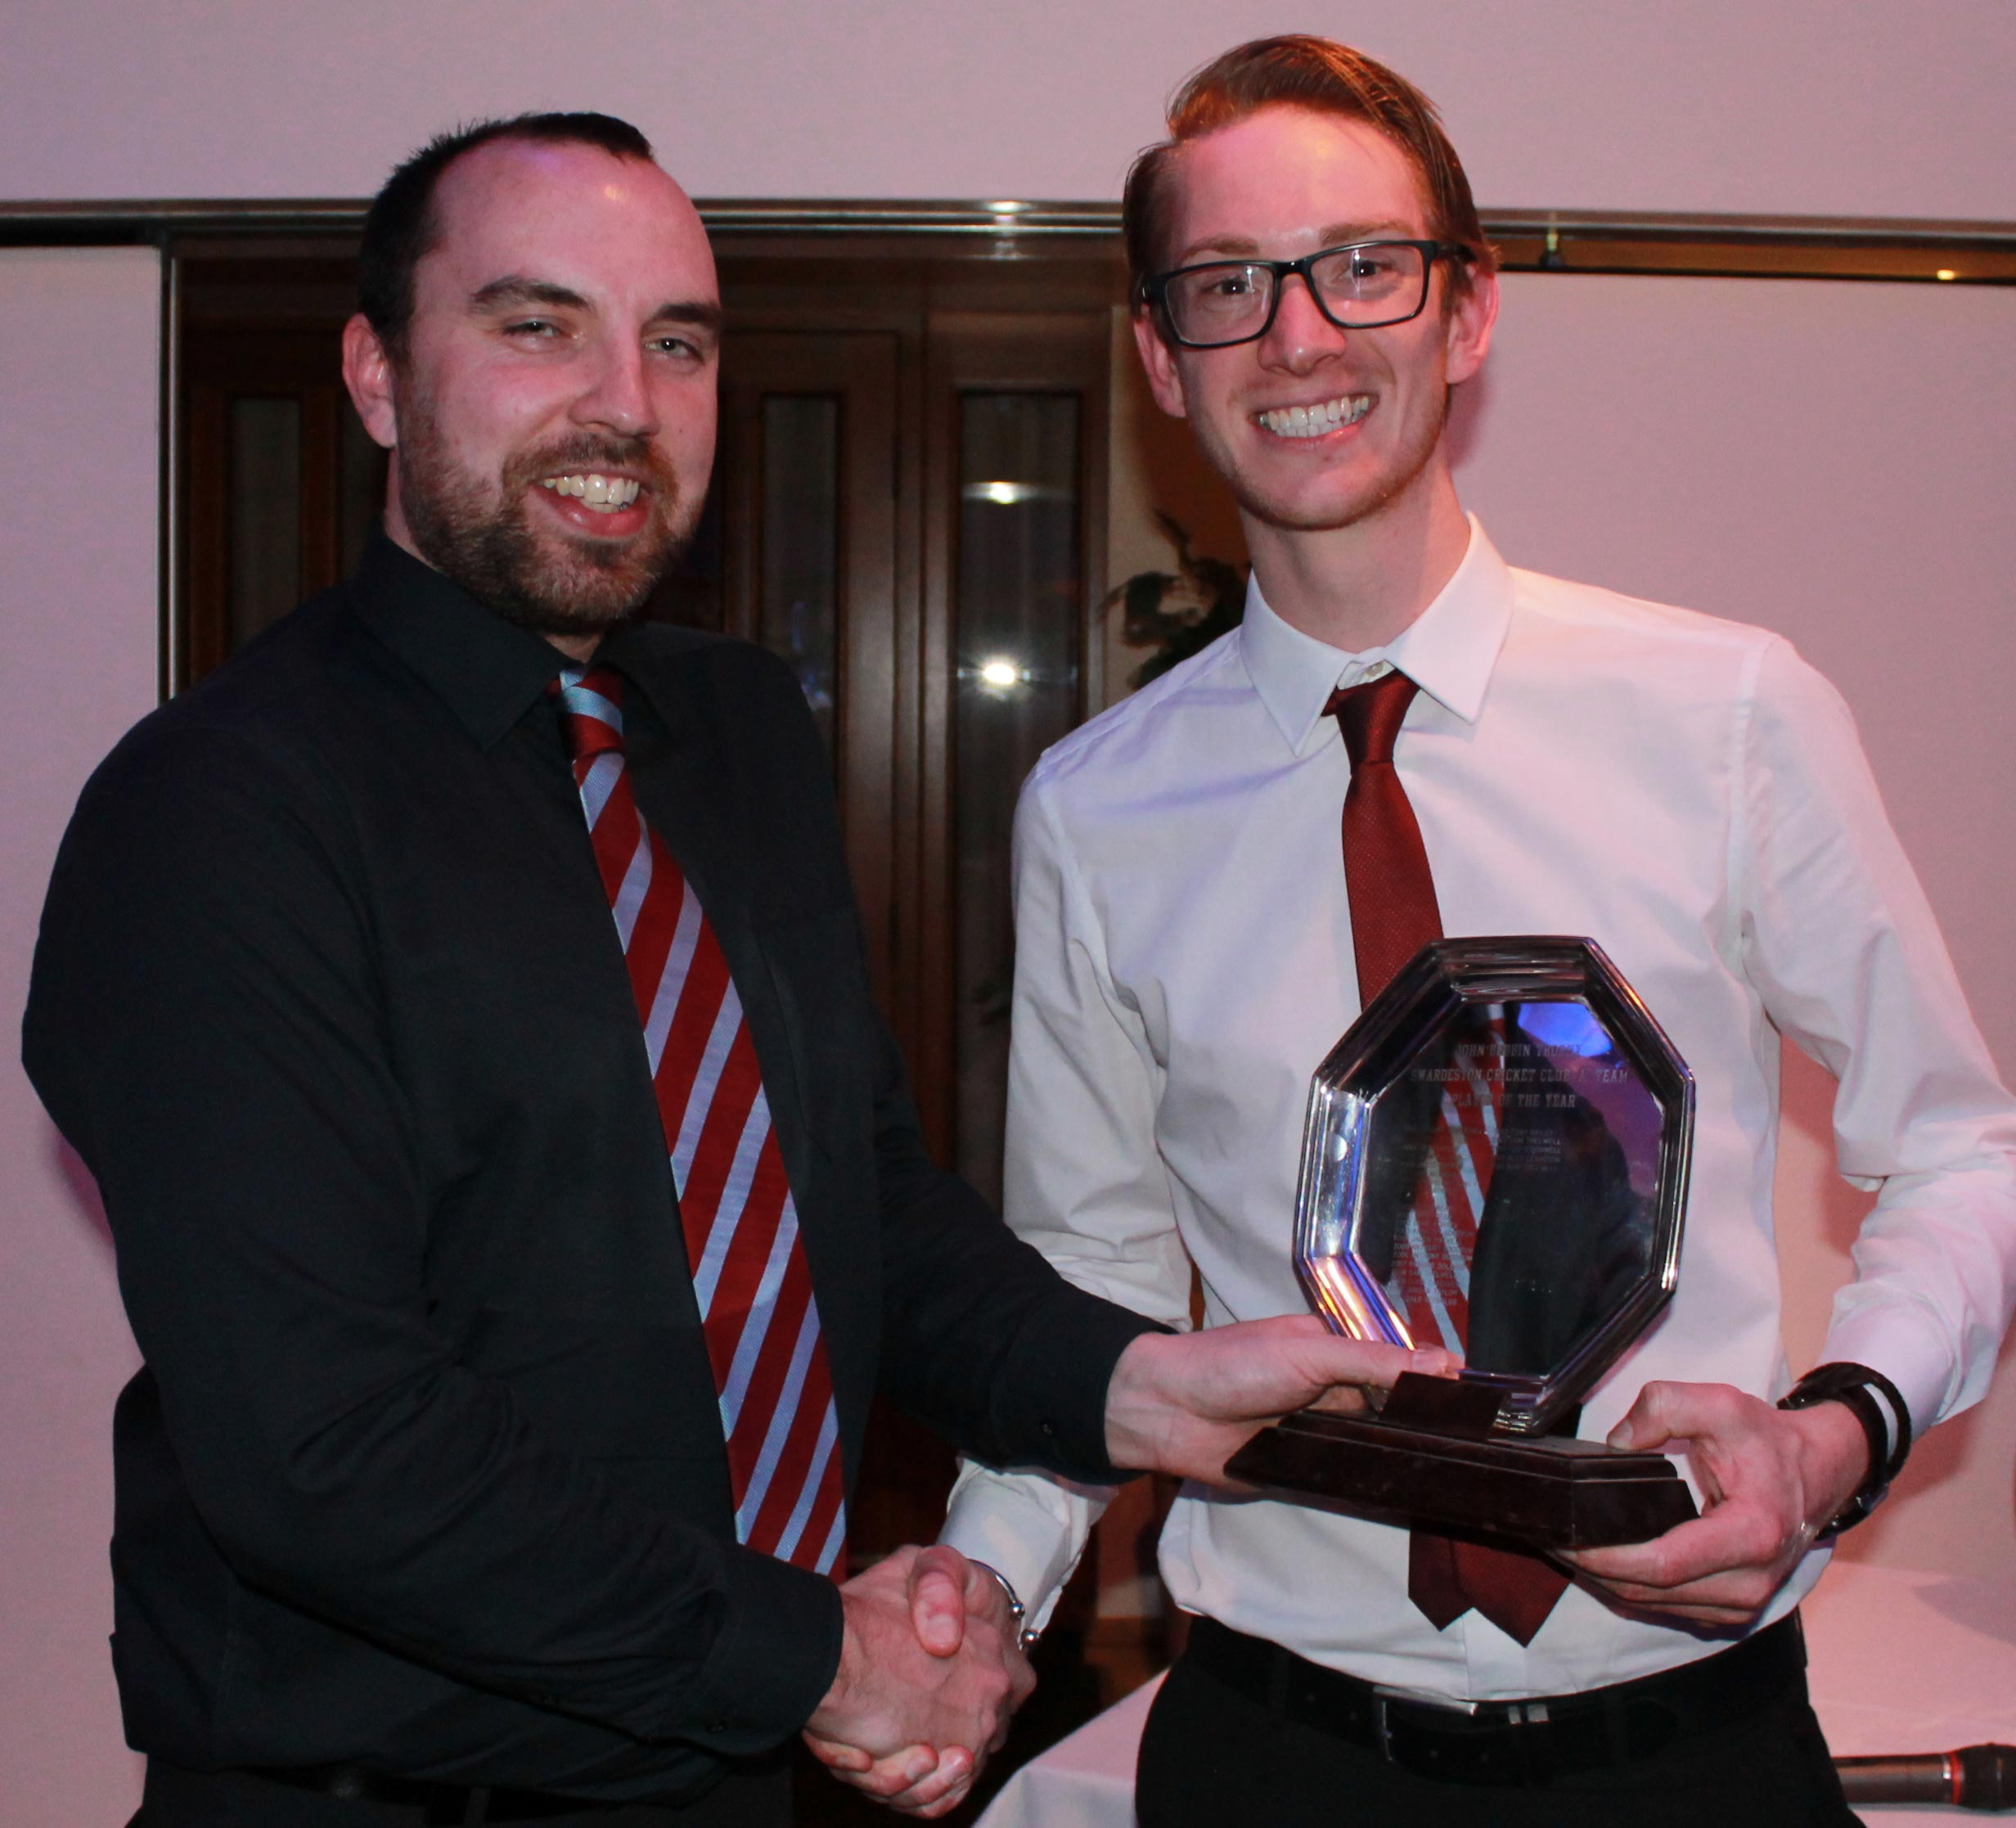 Ben Hogg presents SAm Thelwell with the John Bobbin Salver for 2nd XI player of the year.  Ben Hogg presents Sam Thelwell with the John Bobbin Salver for 2nd XI player of the year.